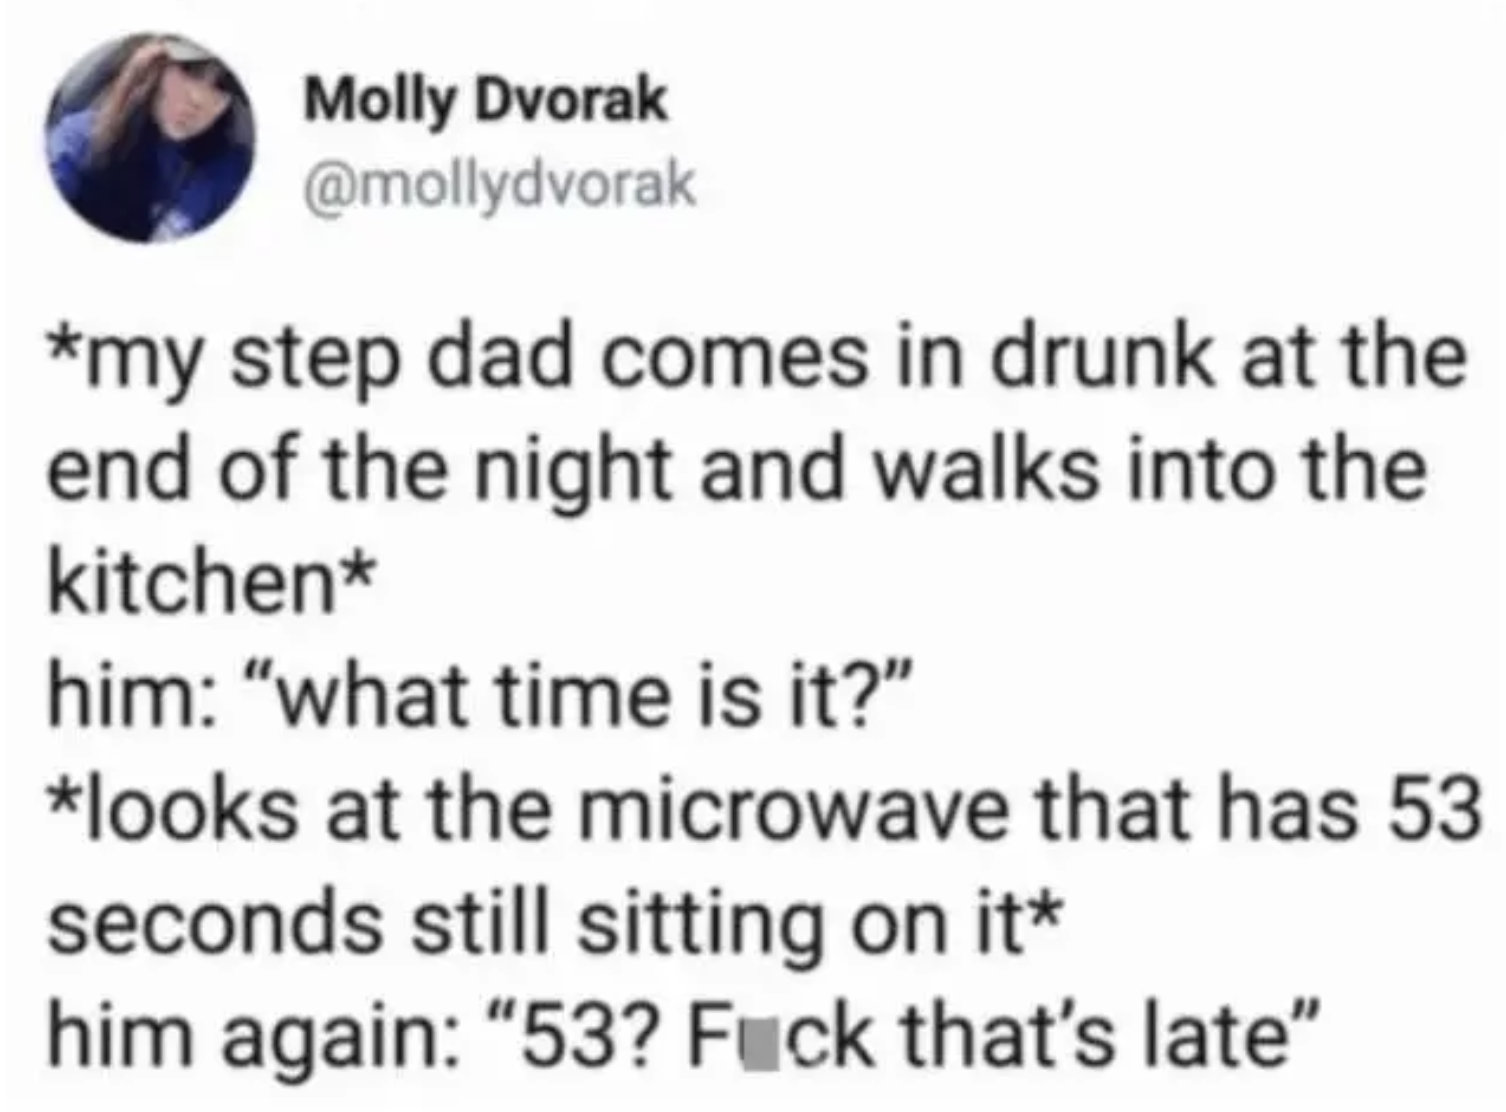 """Tweet reading, """"*my step dad comes in drunk at the end of the night and walks into the kitchen* him: 'what time is it?' *looks at the microwave that has 53 seconds still sitting on it* him again: '53? Fuck that's late'"""""""